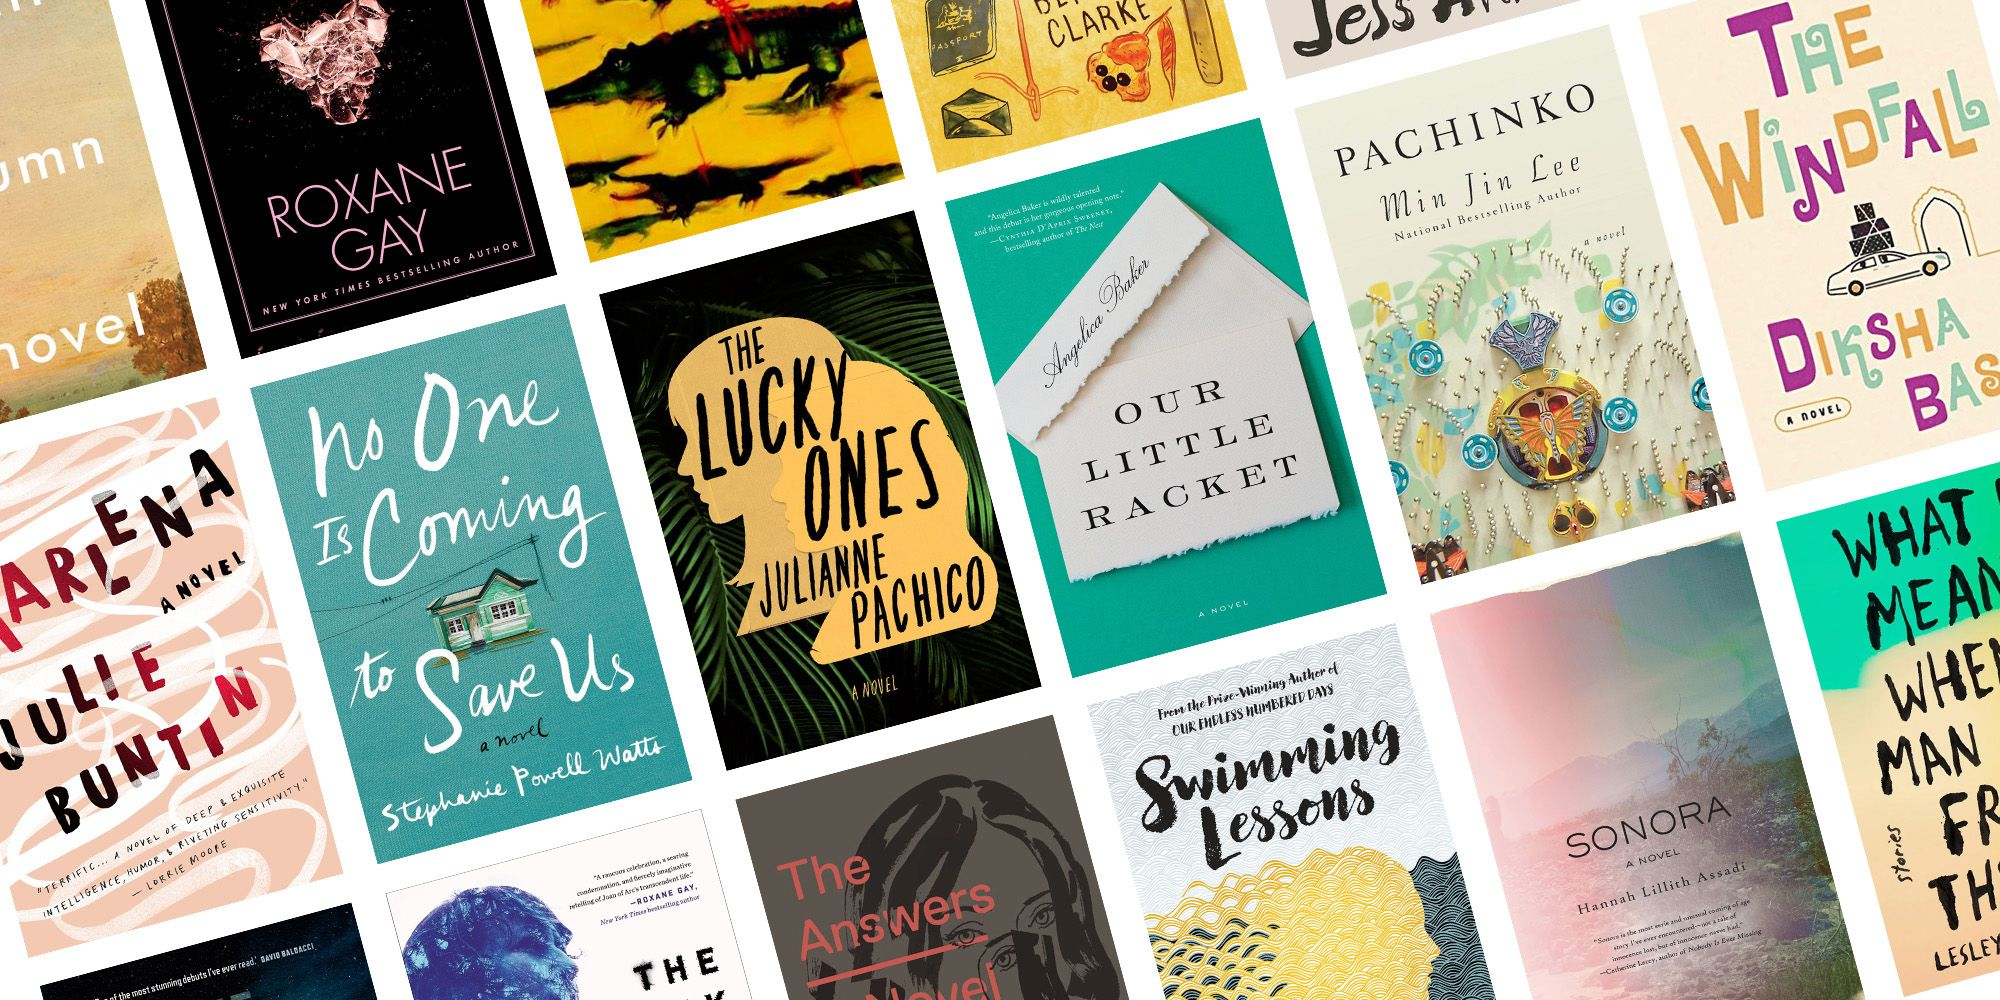 Best Books by Women in 2017 New Fiction by Female Authors to Read